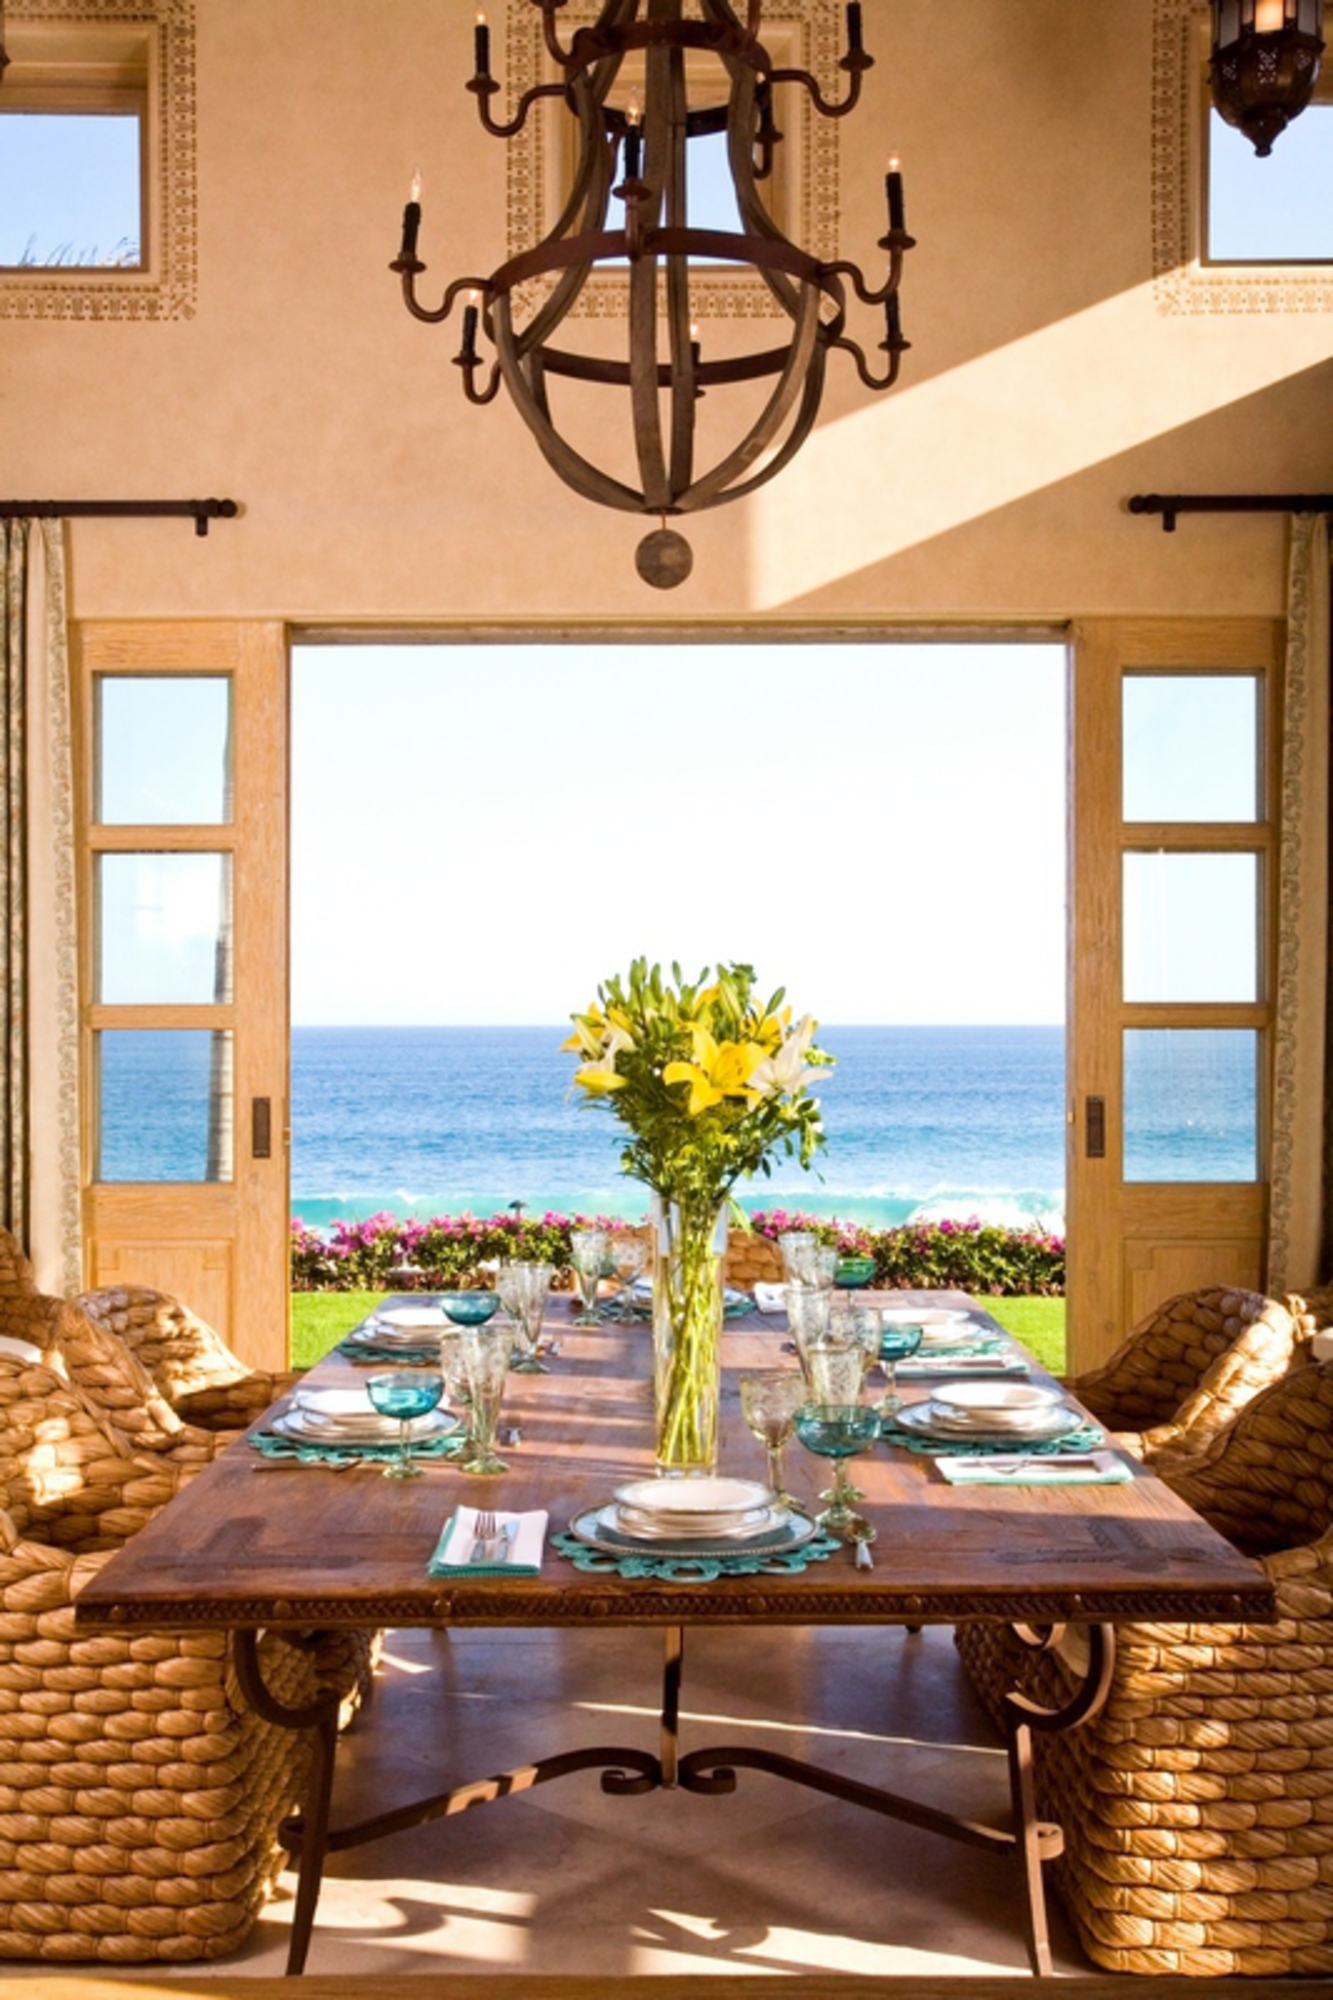 House Tour-Tropical Paradise in Cabo San Jose 3.jpg